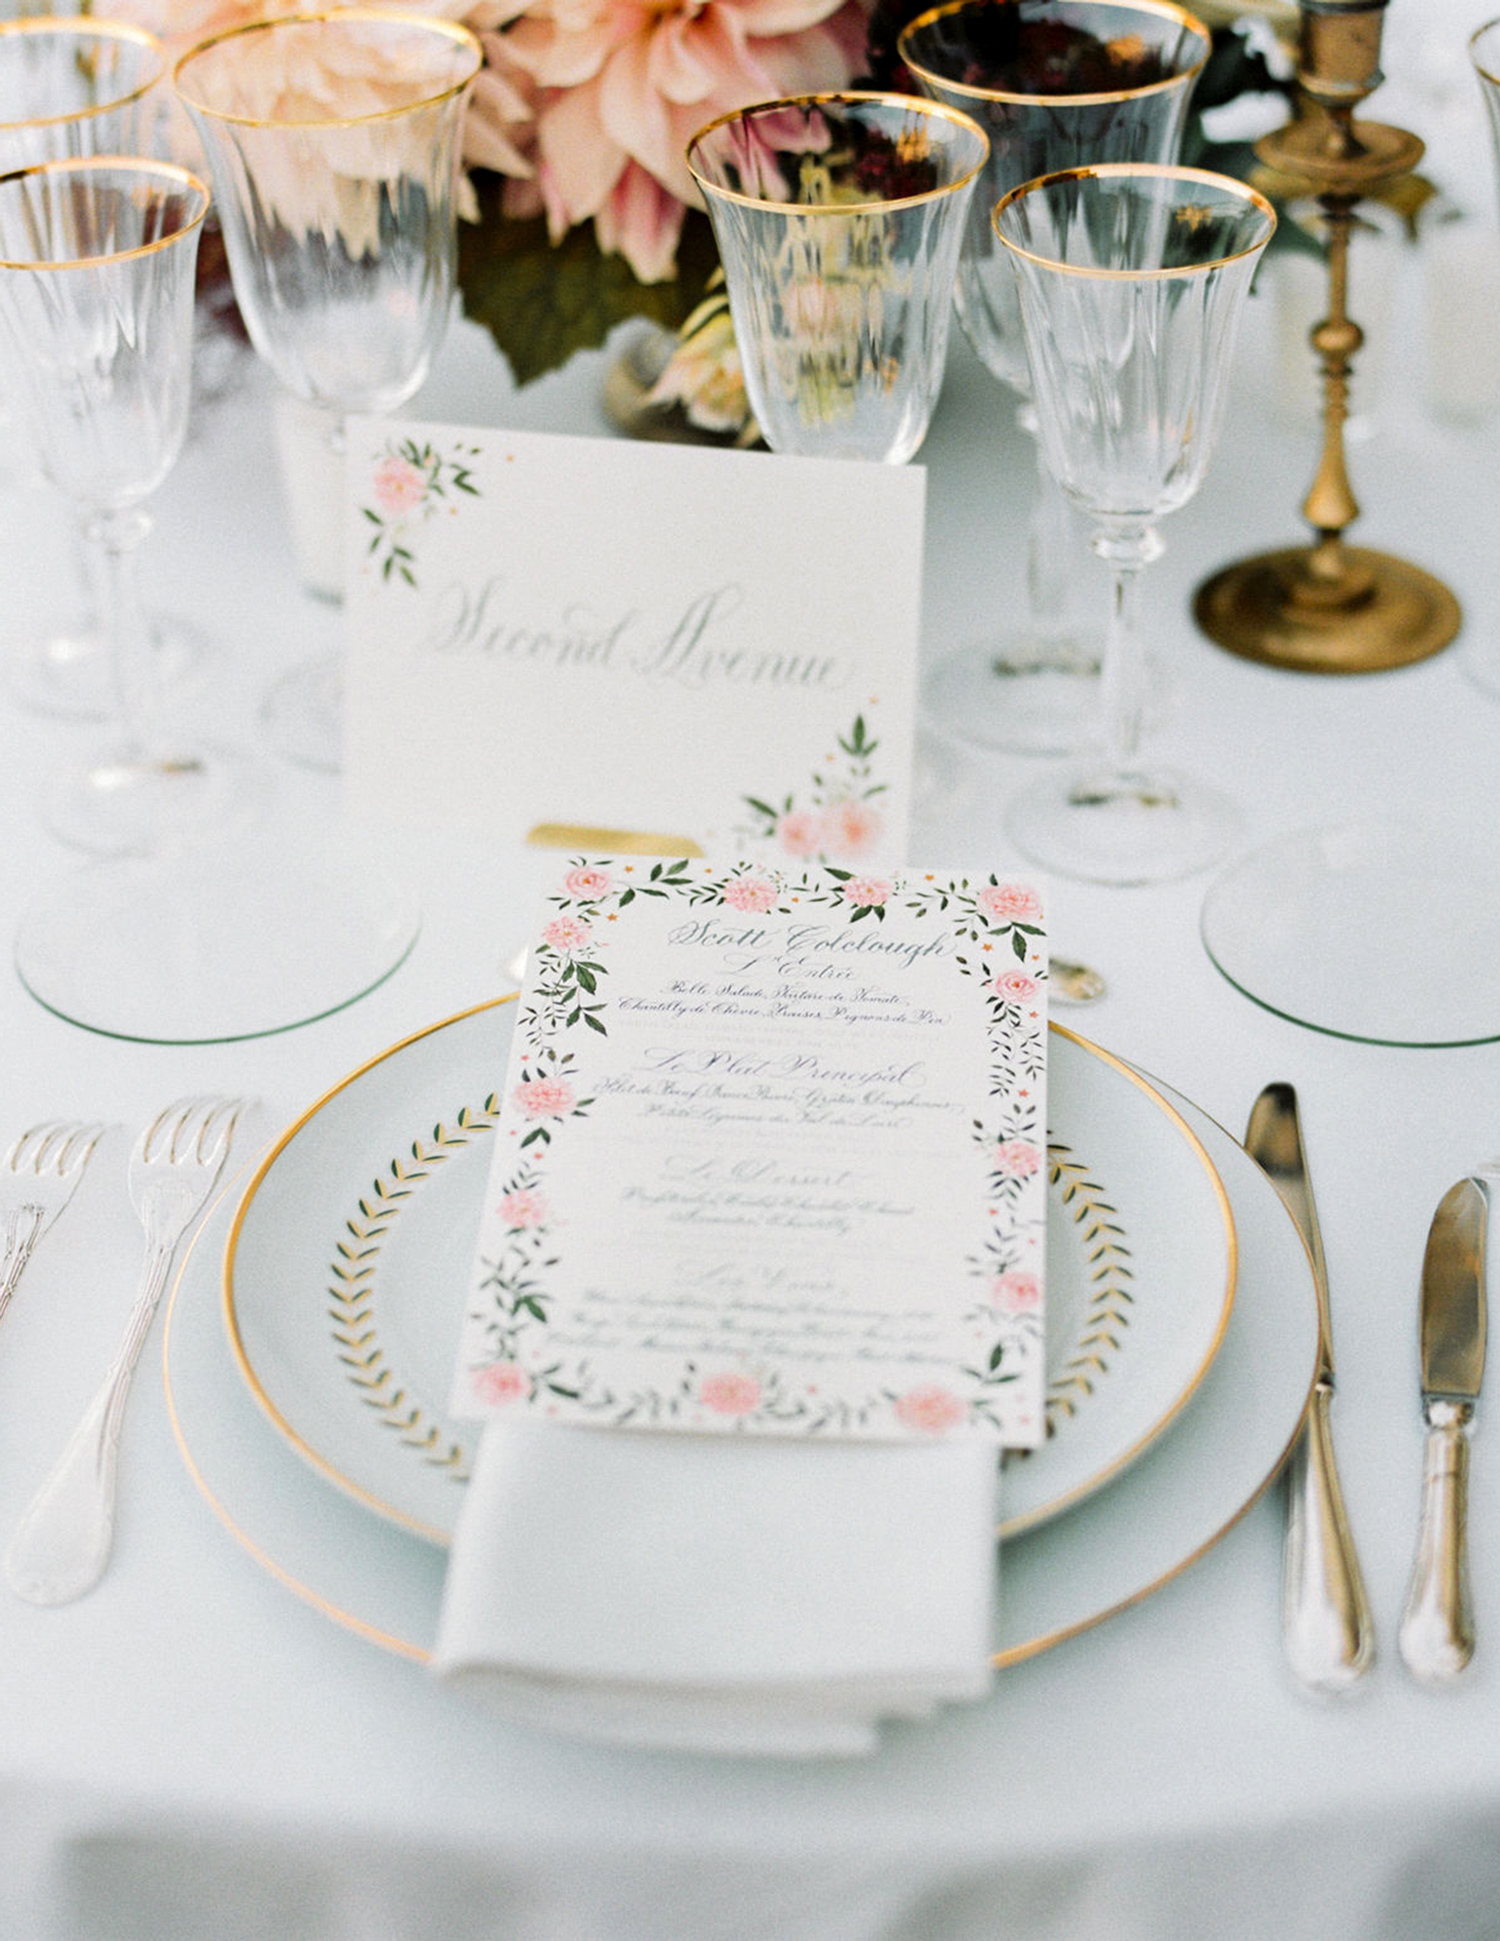 close-up wedding menu on place settings